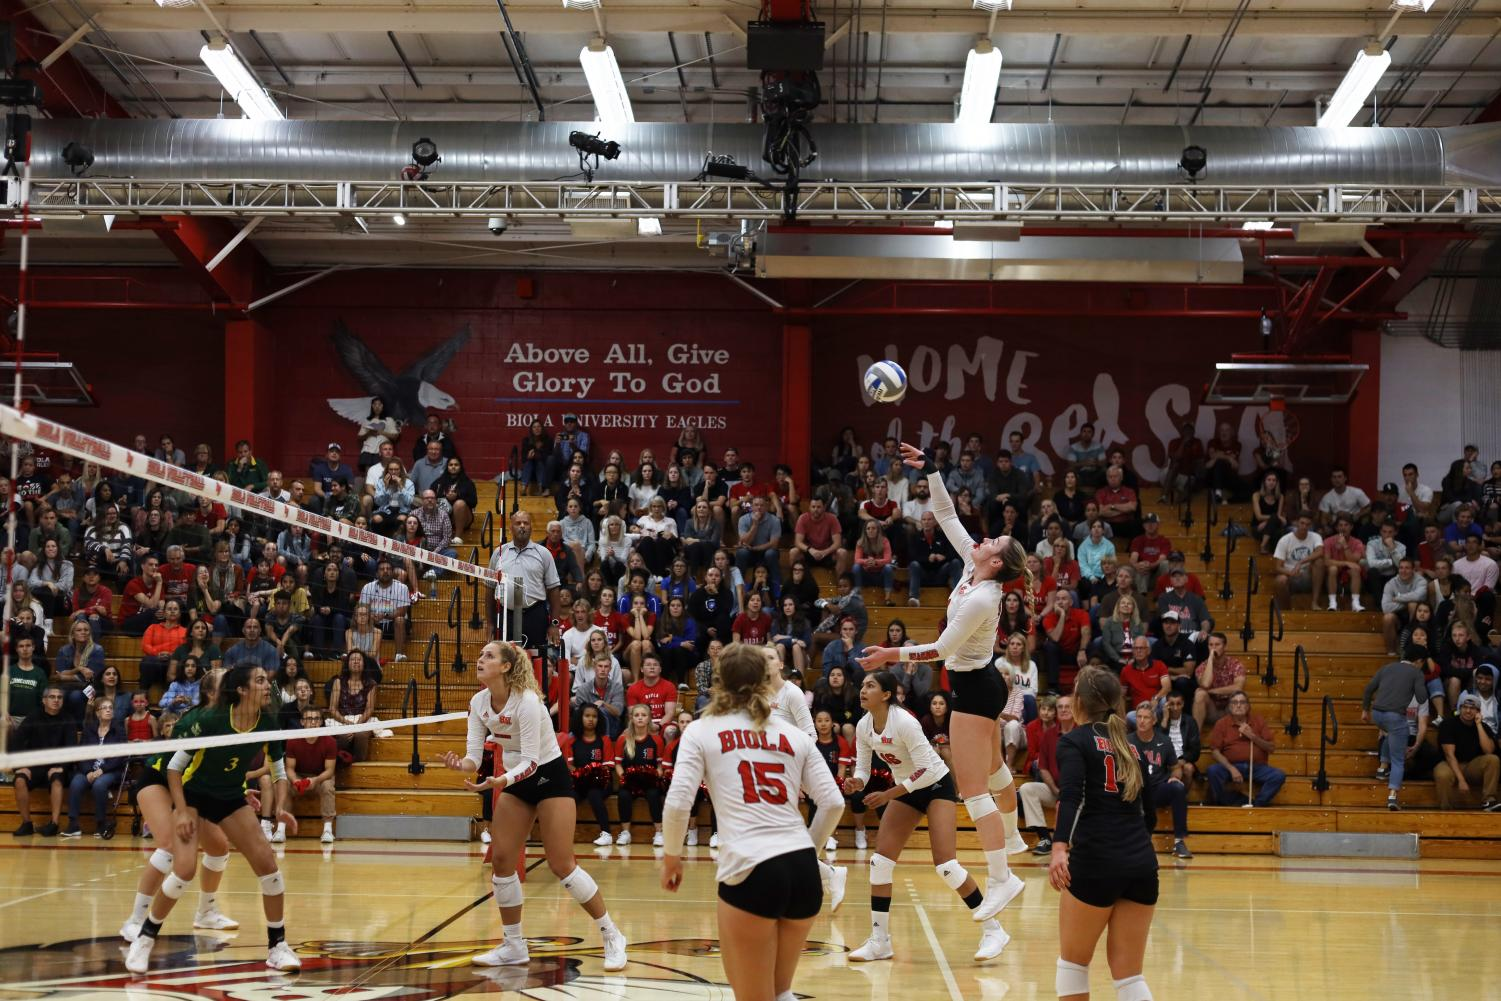 A Biola volleyball player jumps for the ball.